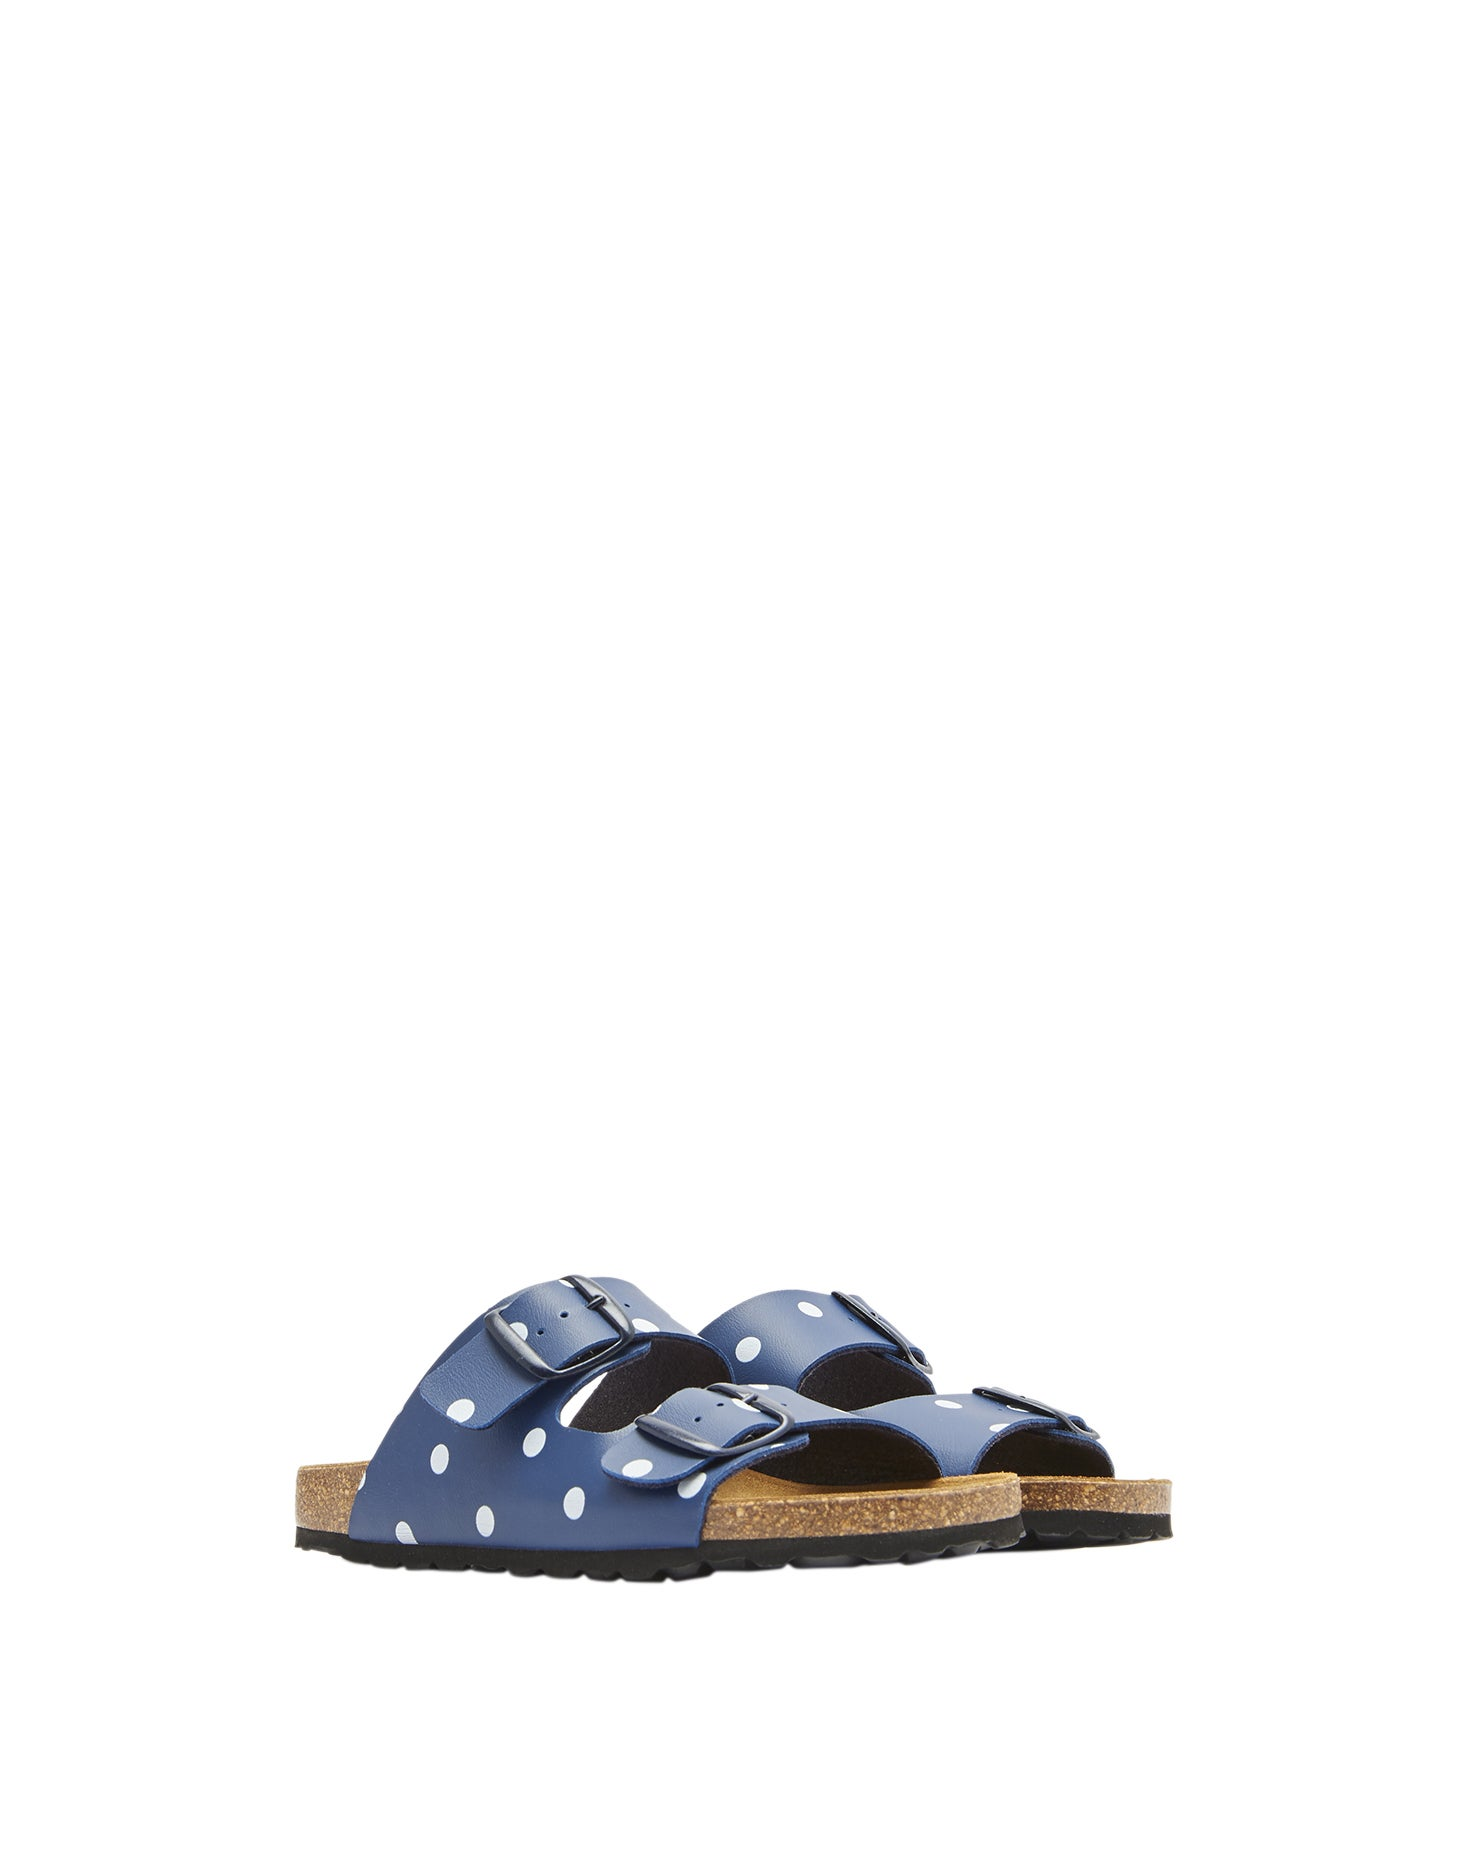 Joules Penley Women's Sandals